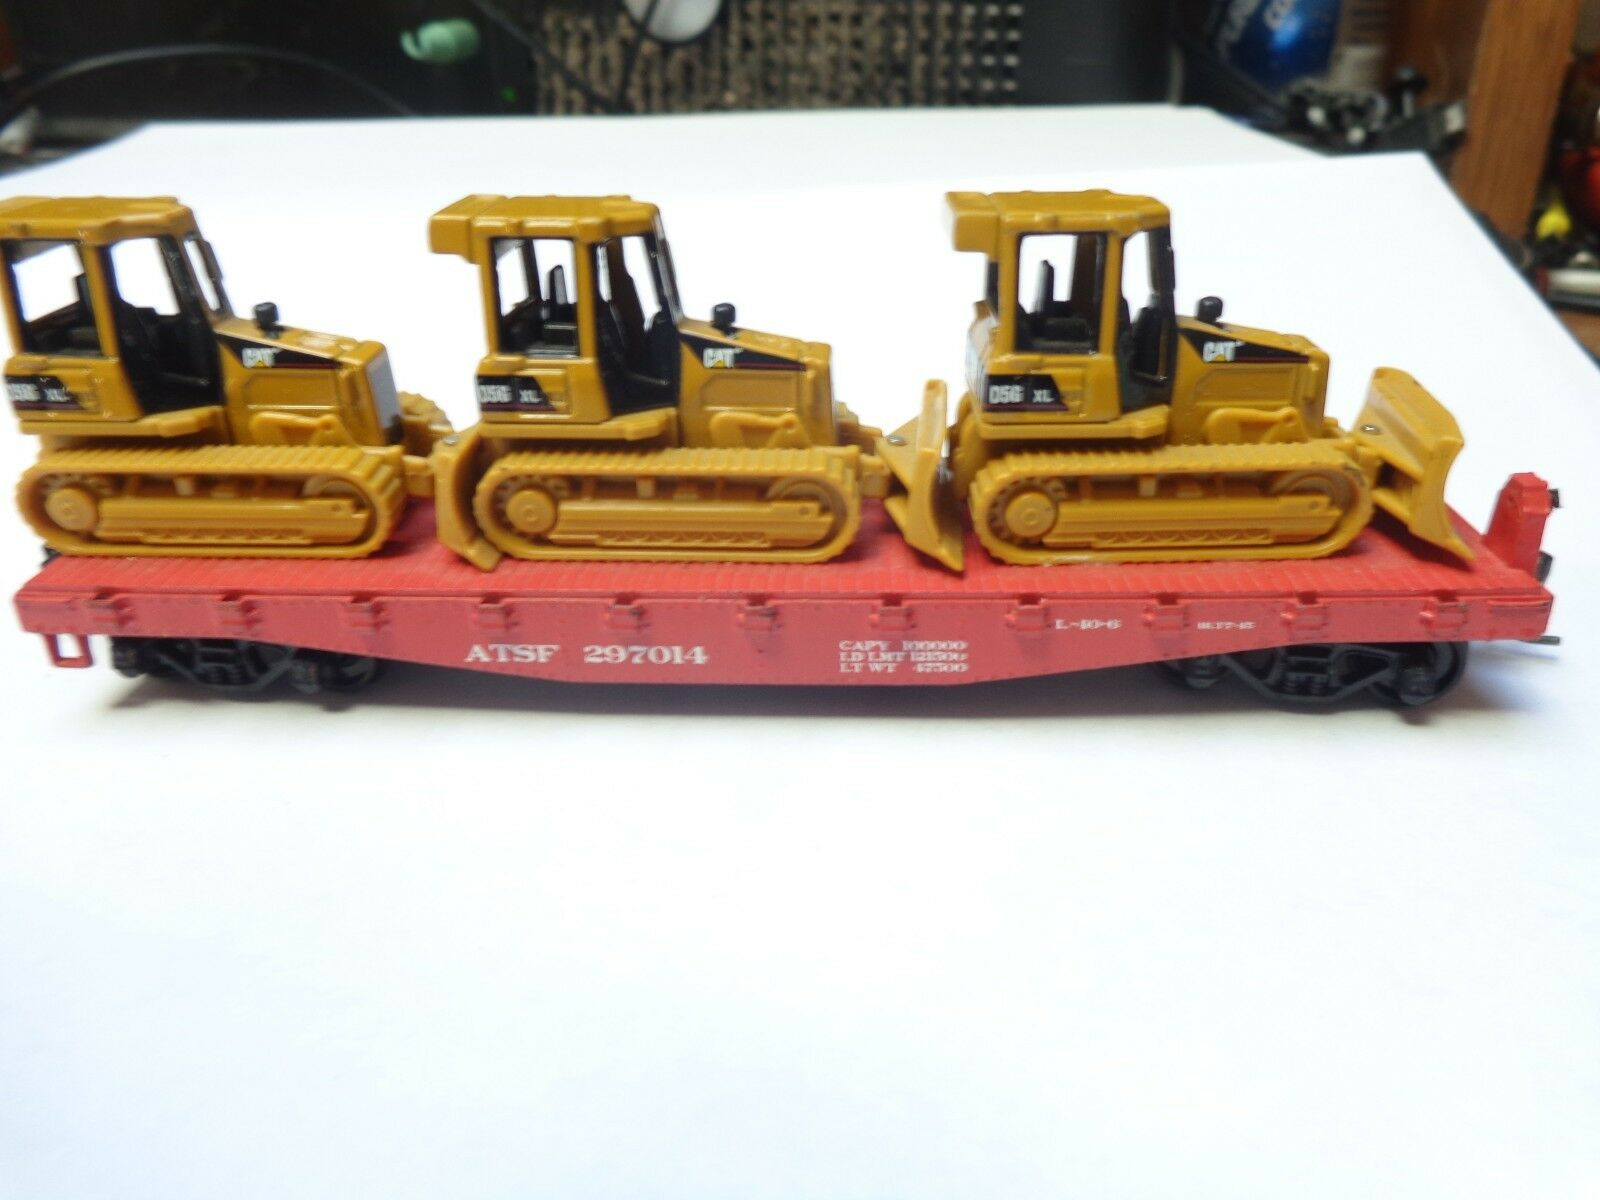 Athearn  40' flatcar with 3 bulldozers loaded . Kadee couplers  Santa Fe  HO